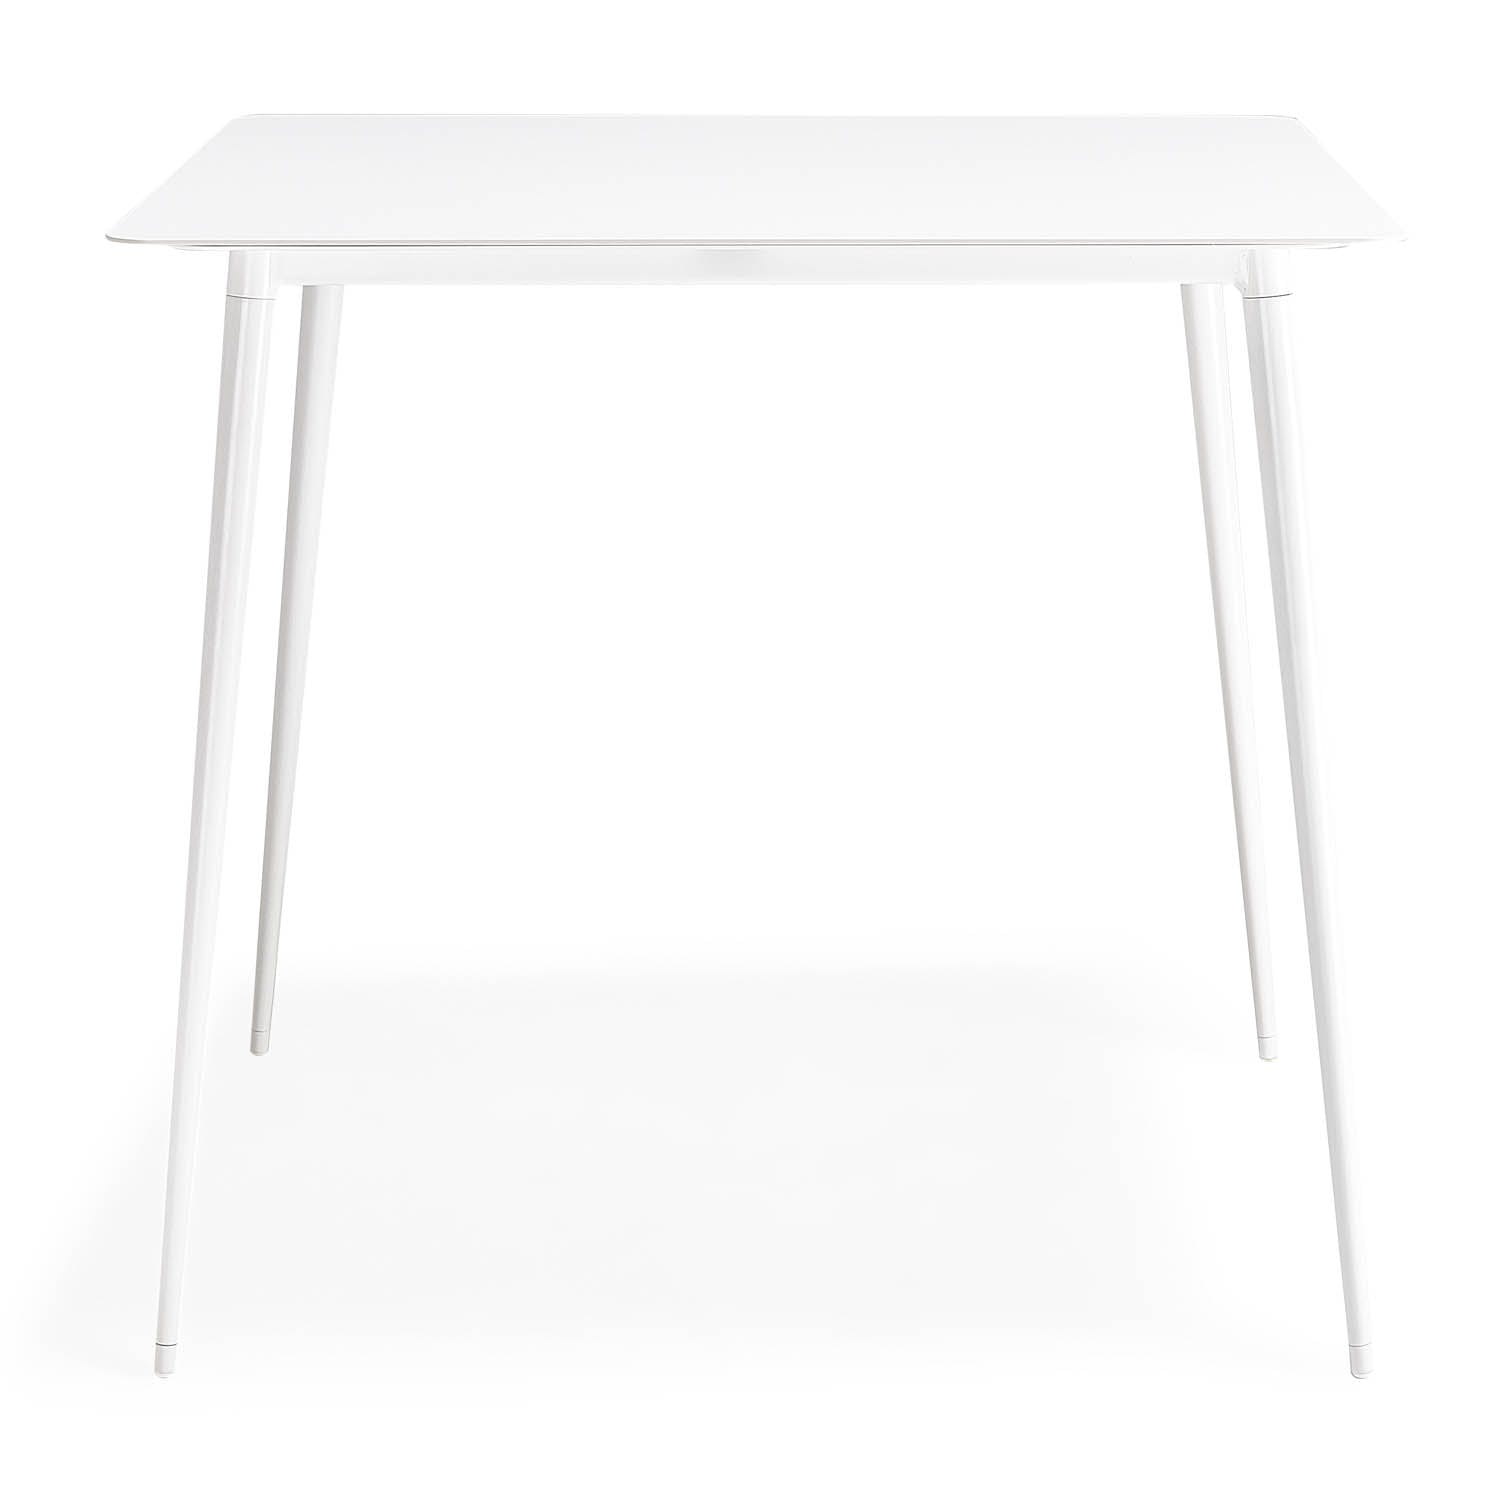 Product Image - Pulp Rectangle Dining Table White